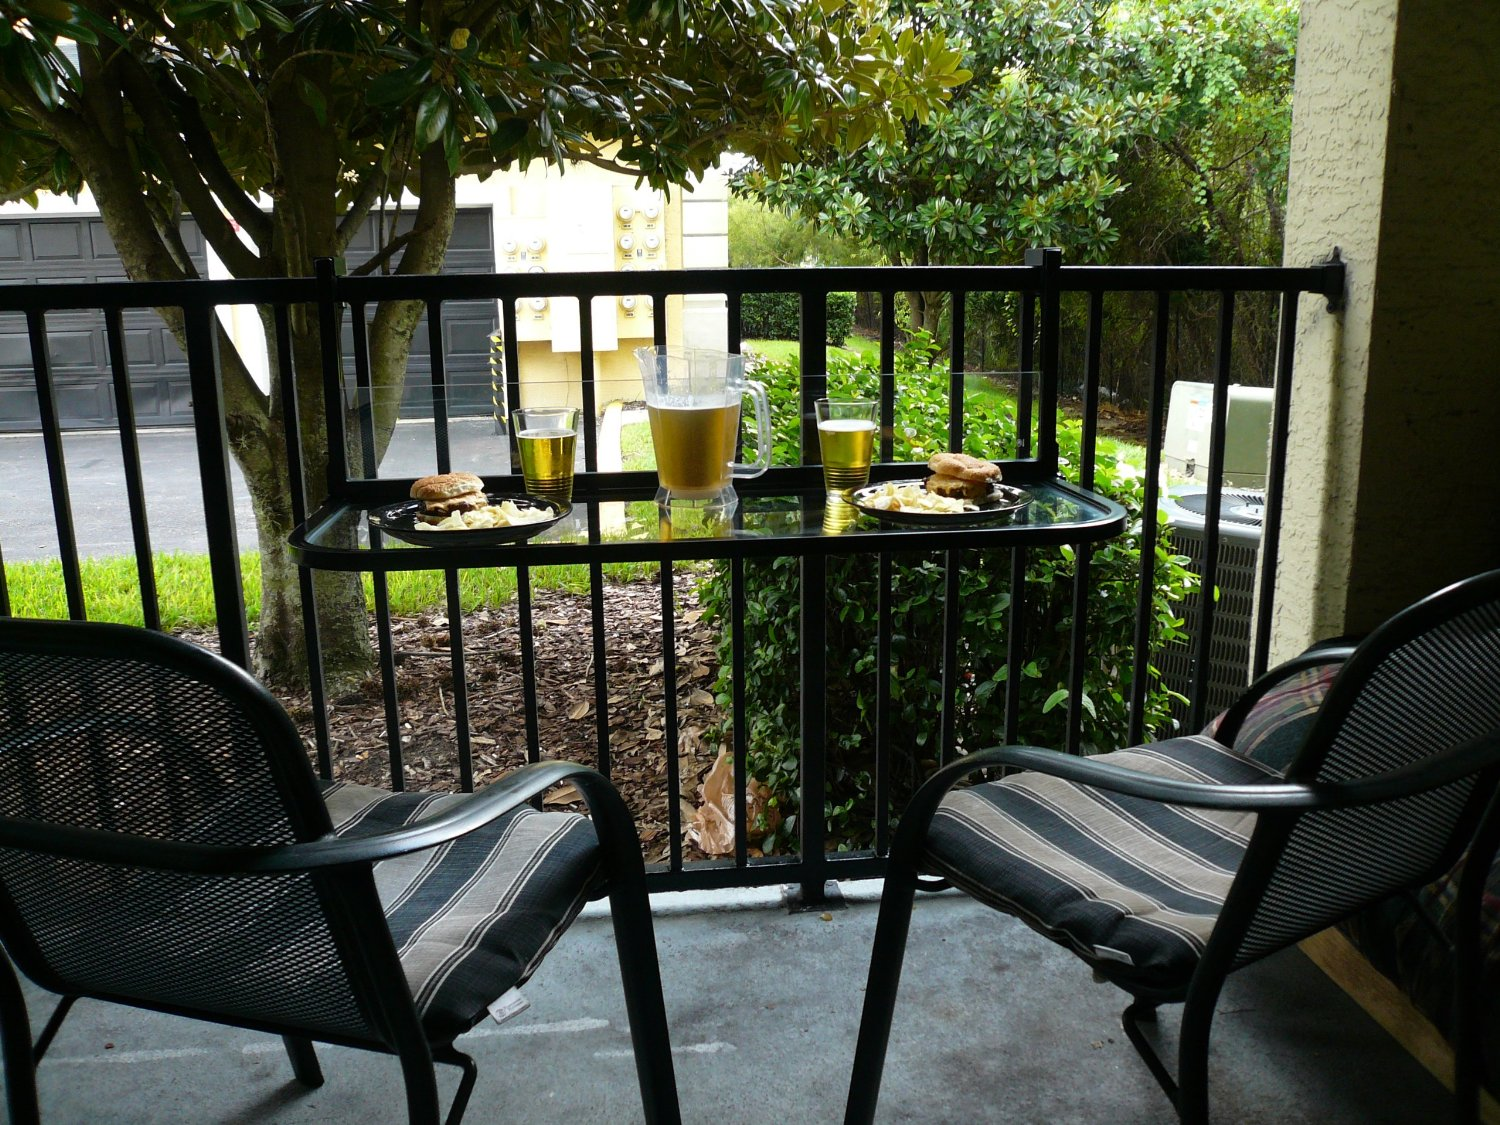 Chairs Balcony Table And